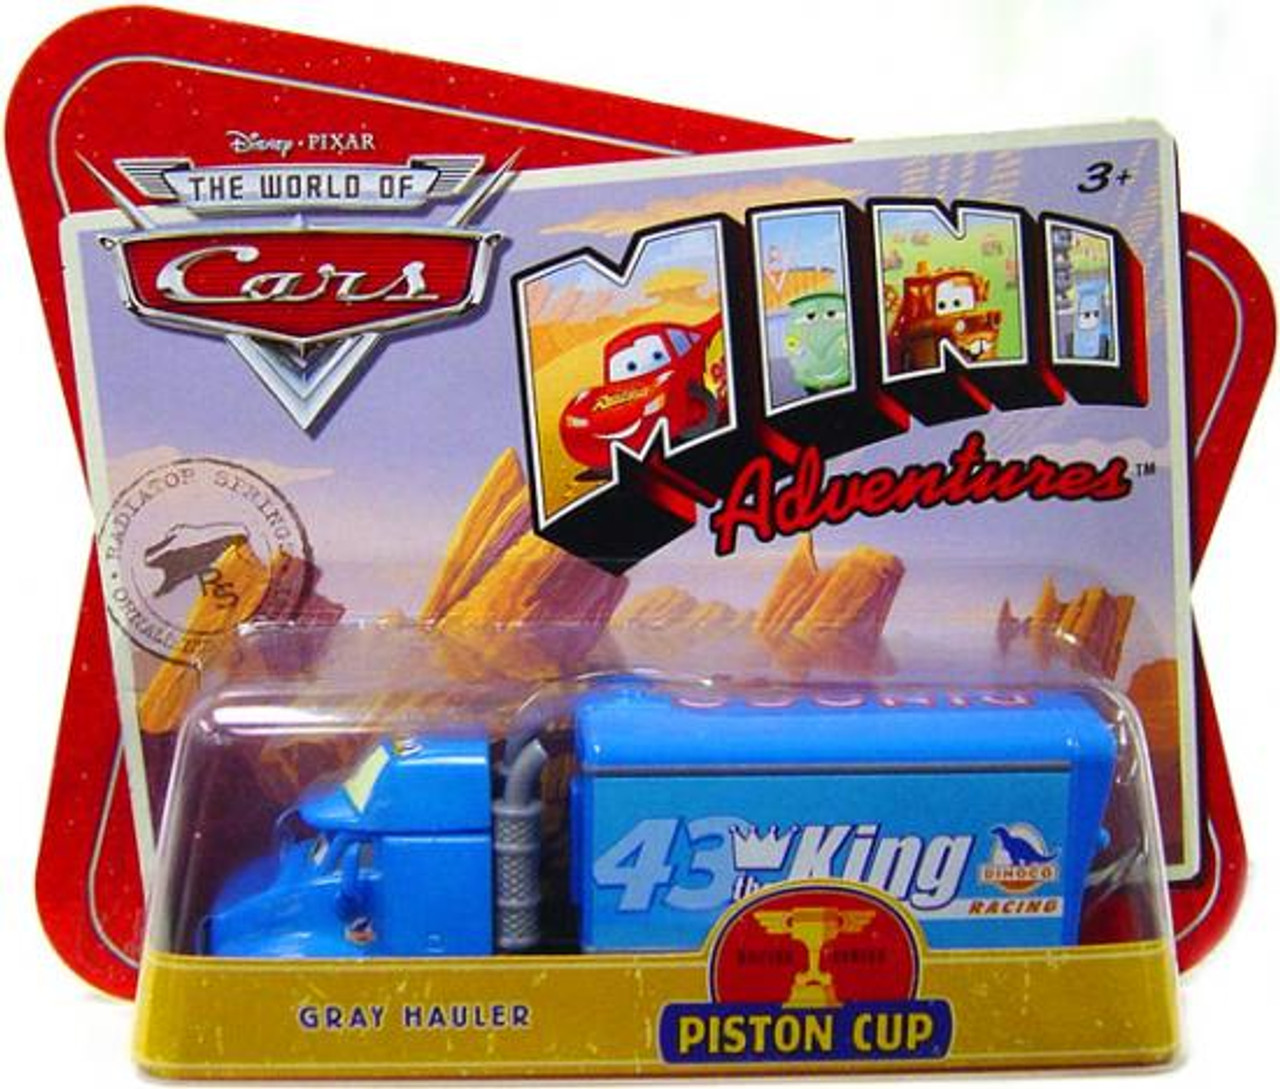 Disney Cars The World of Cars Mini Adventures Gray Hauler Plastic Car